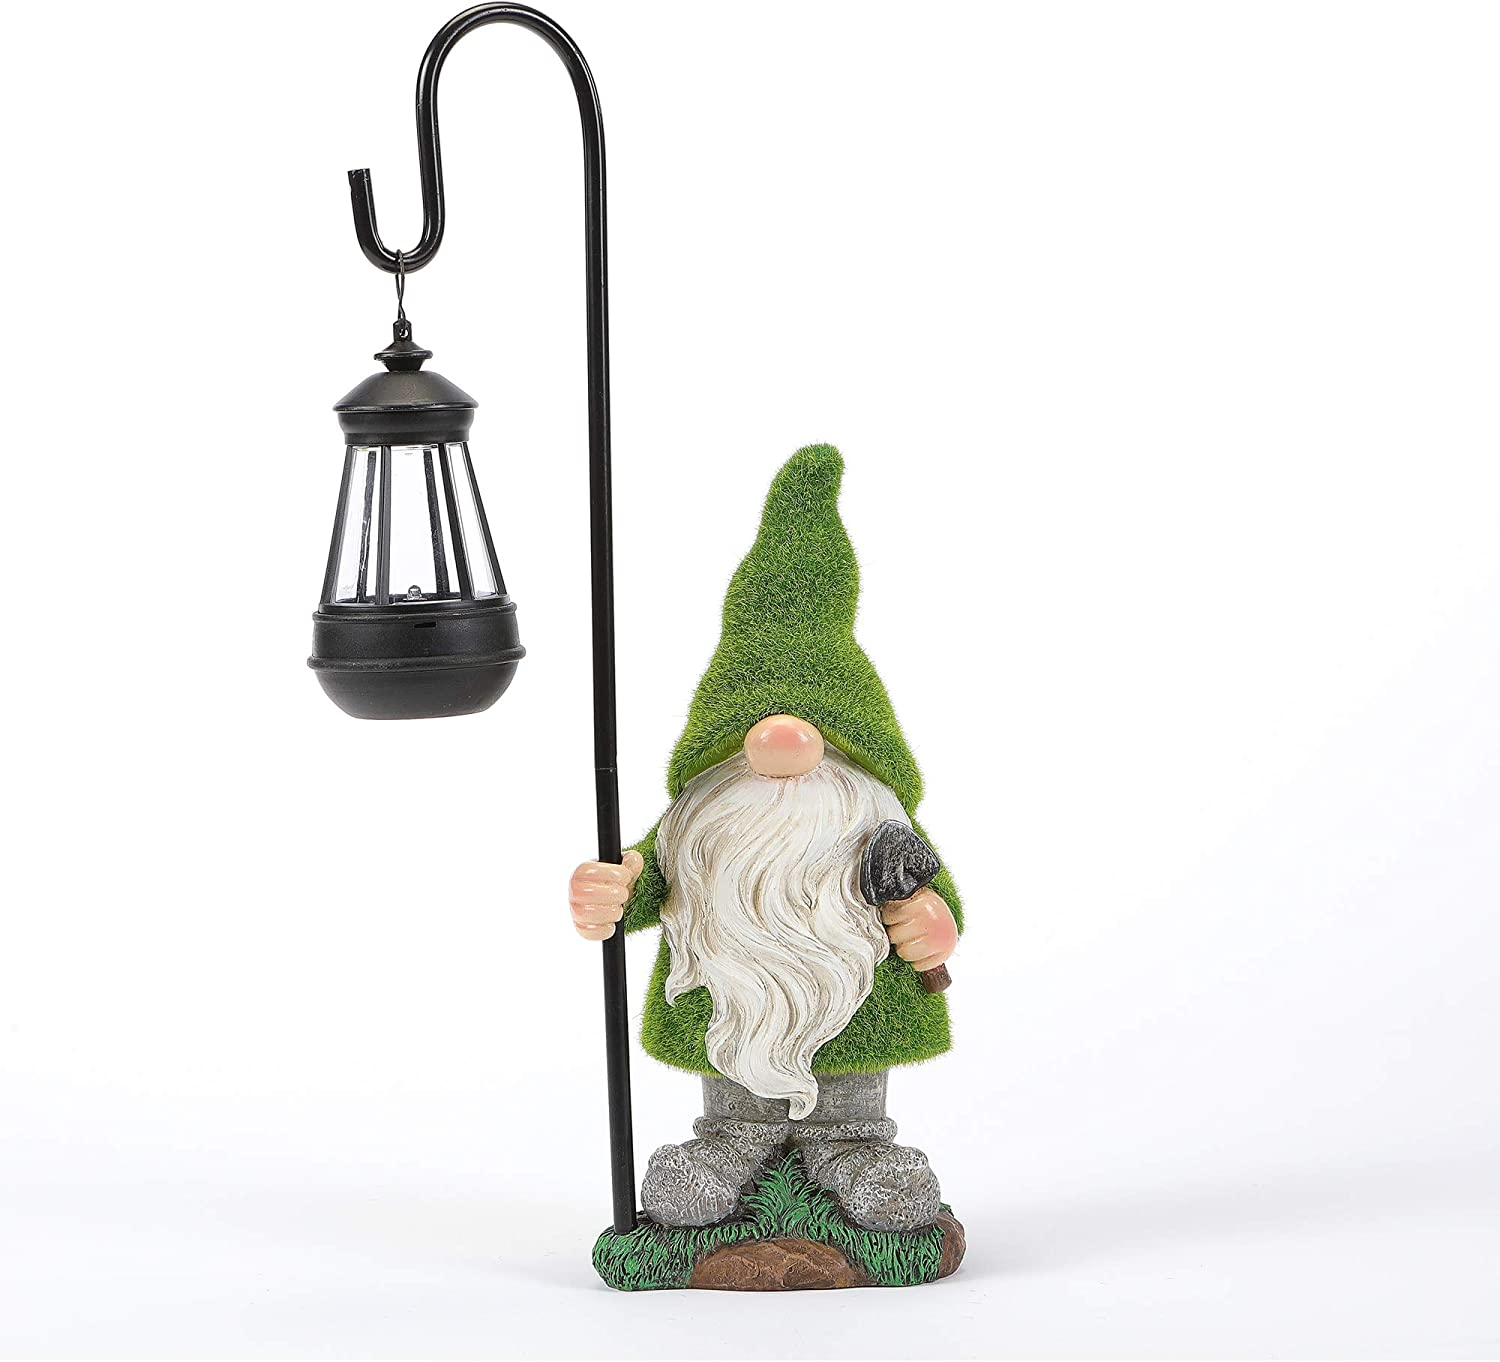 HDNICEZM Flocked Garden Gnome Statue, Large Outdoor Gnome with Solar Lights, Funny Garden Figurines for Outdoor Home Yard Decor (13 Inch Tall)